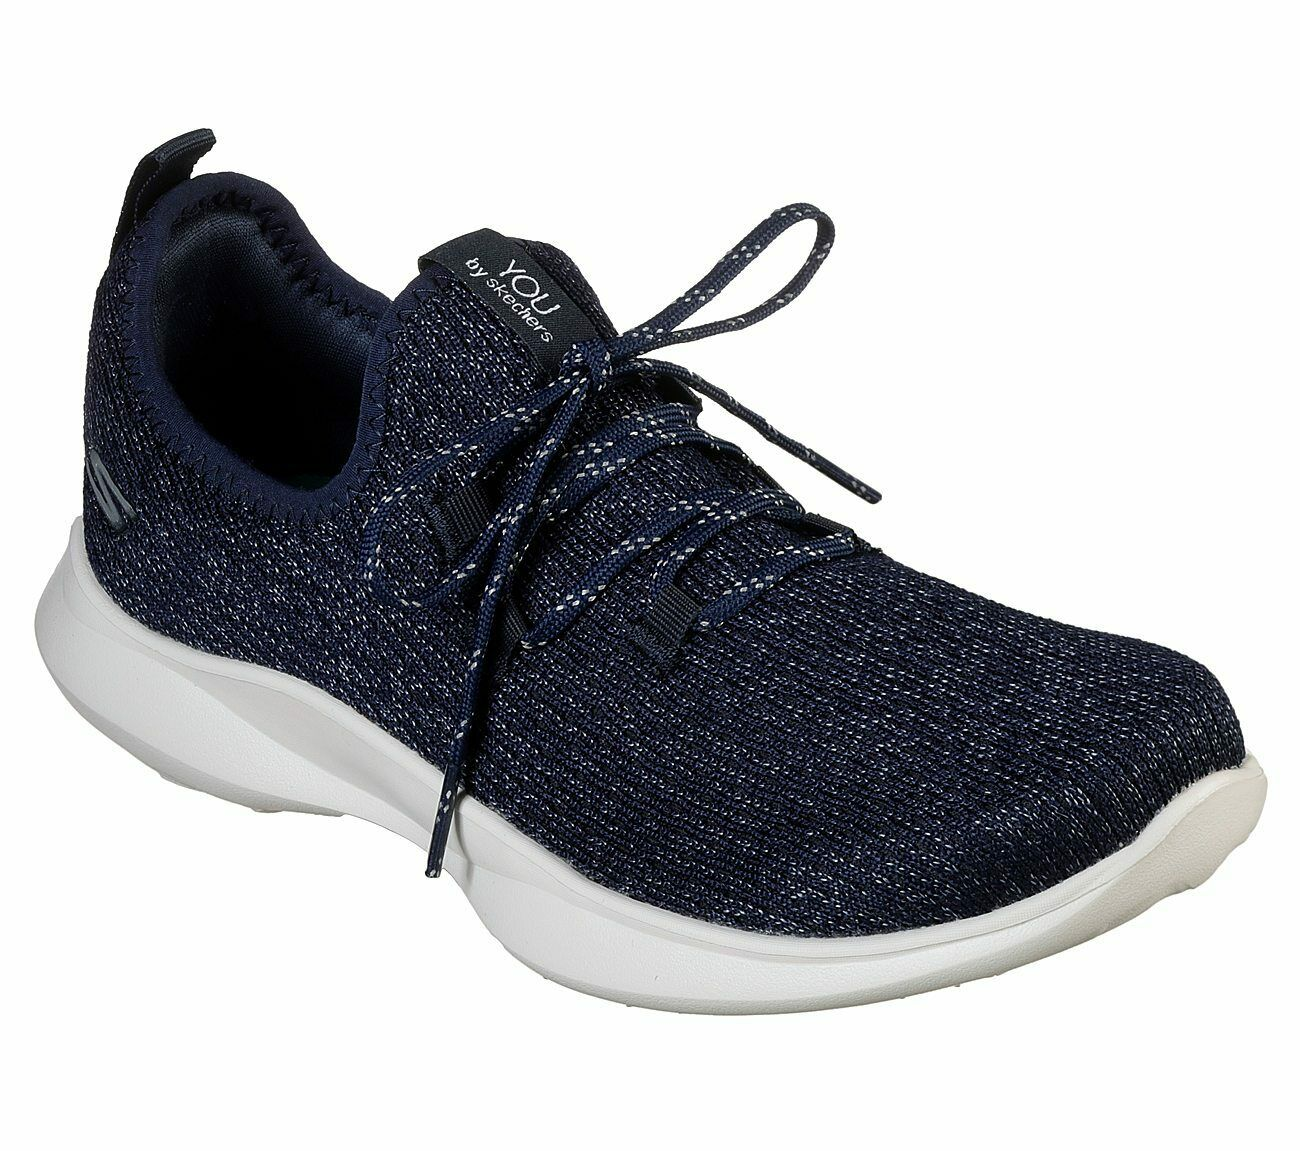 Skechers You Navy shoes Women Slip On Sporty Comfort Casual Walk Flex Mesh 15851